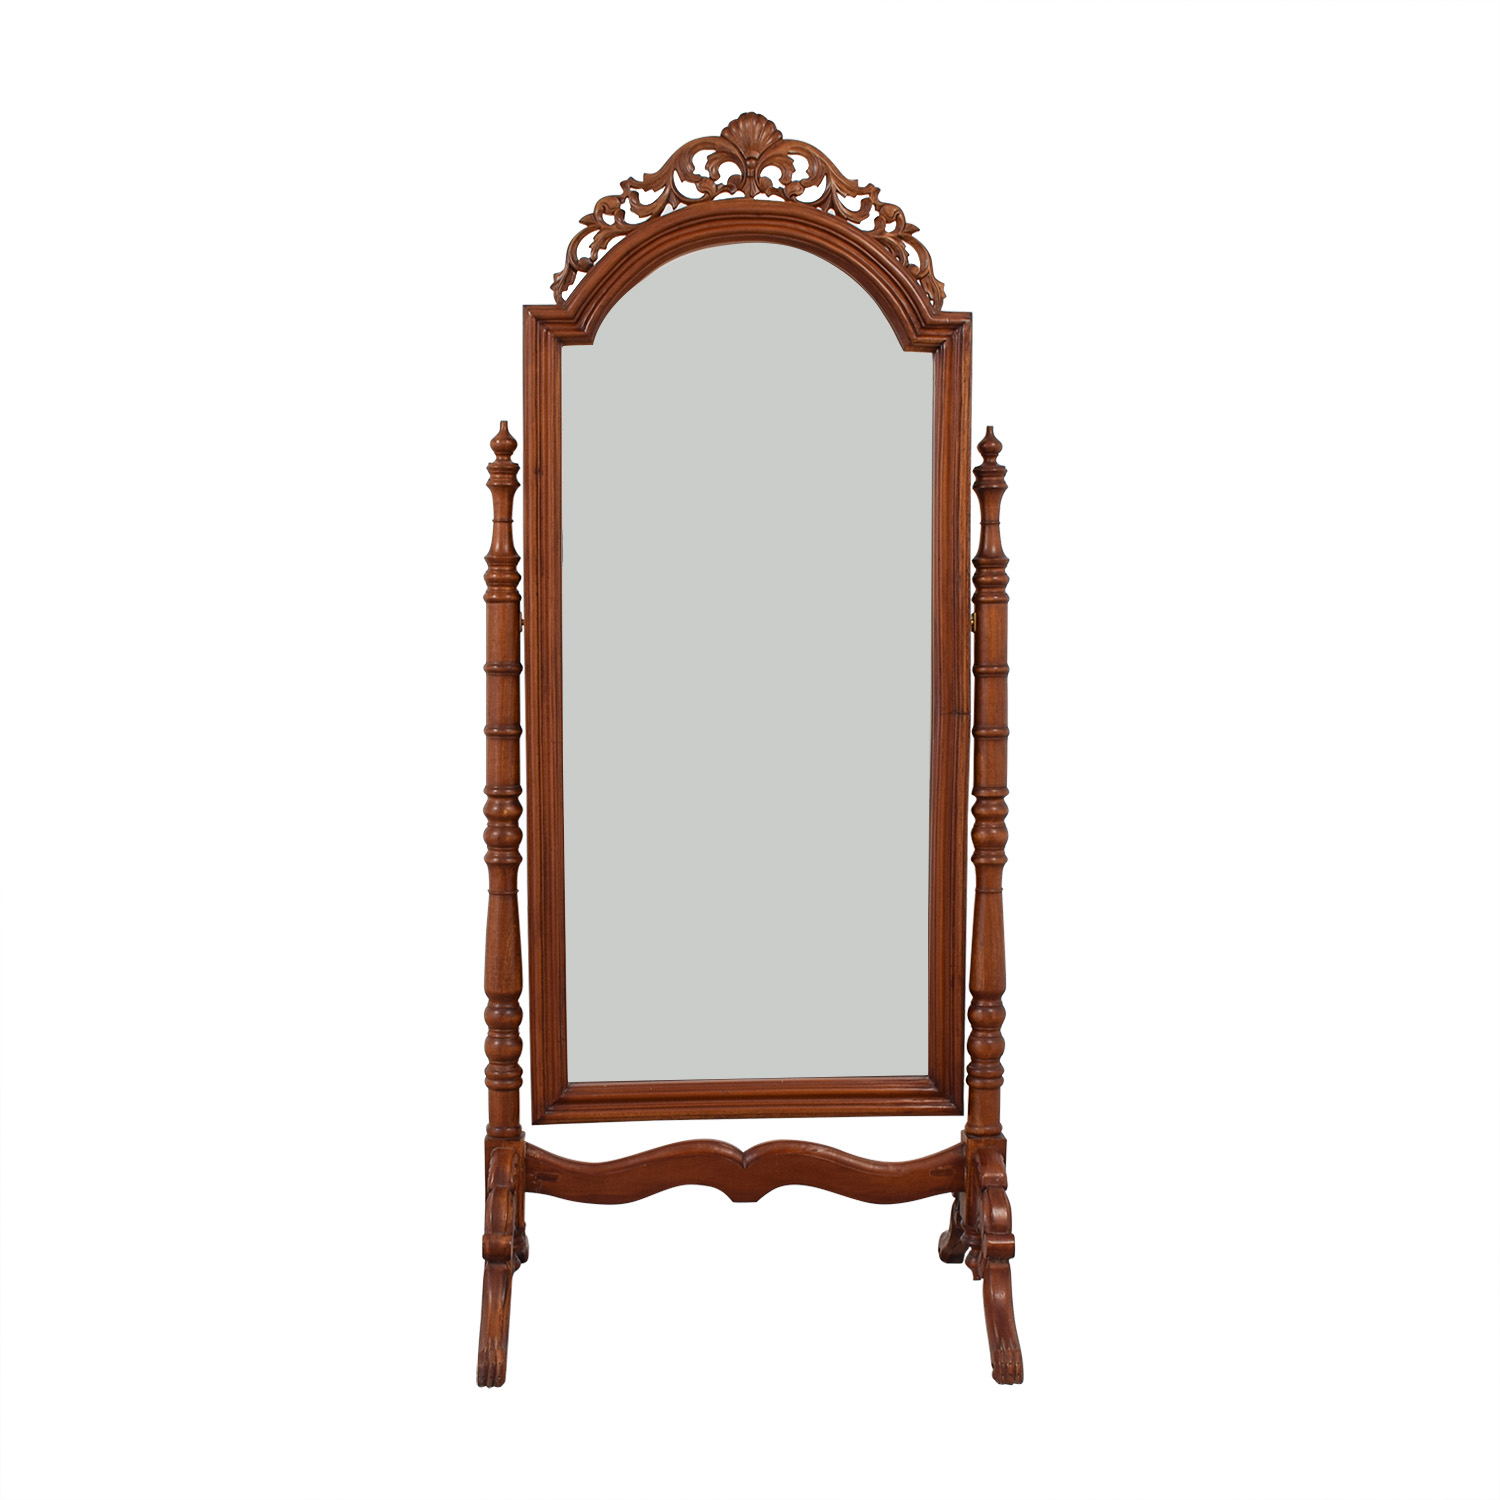 Carved Wooden Standing Mirror